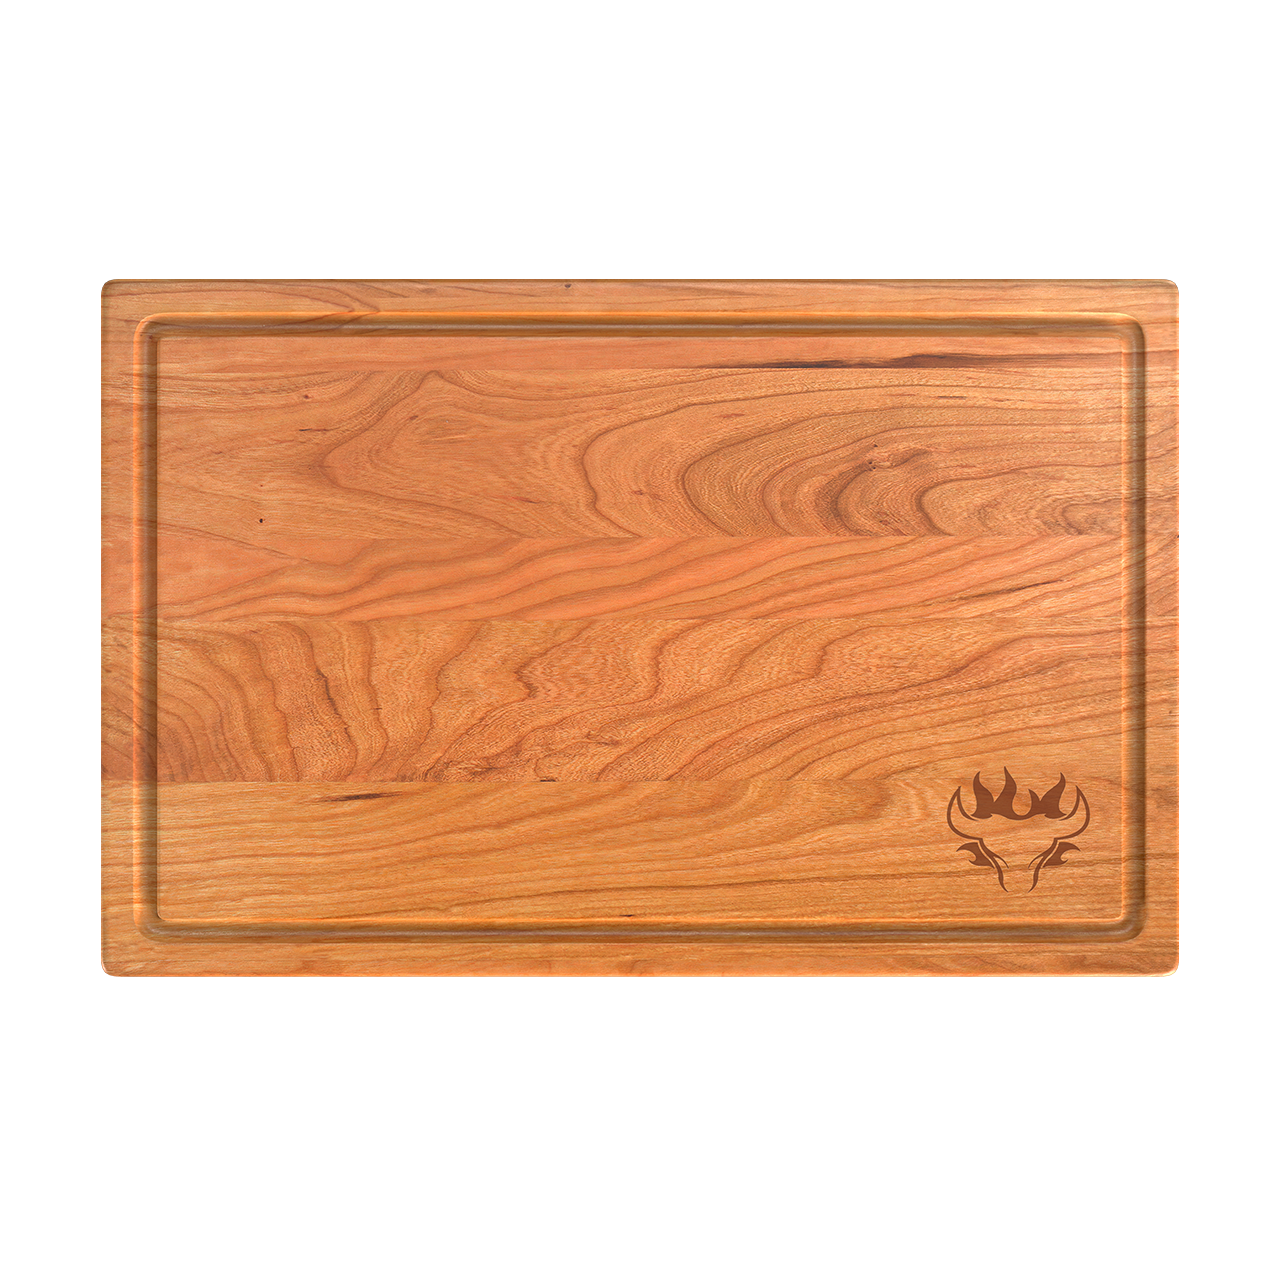 Blazing Bull Cutting Board - Top View